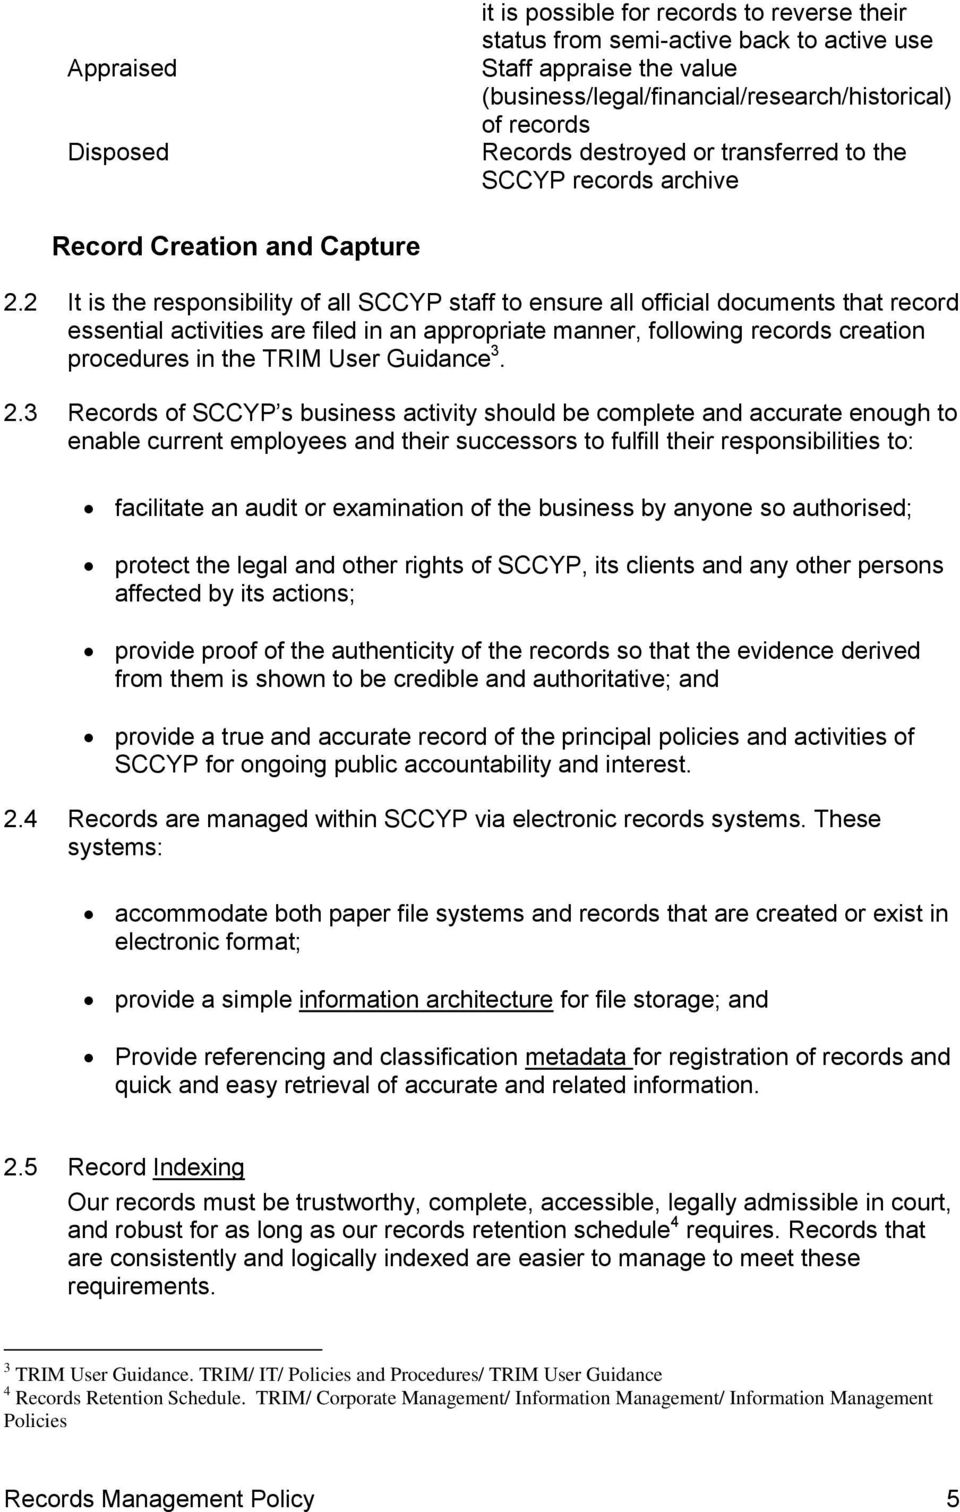 2 It is the responsibility of all SCCYP staff to ensure all official documents that record essential activities are filed in an appropriate manner, following records creation procedures in the TRIM